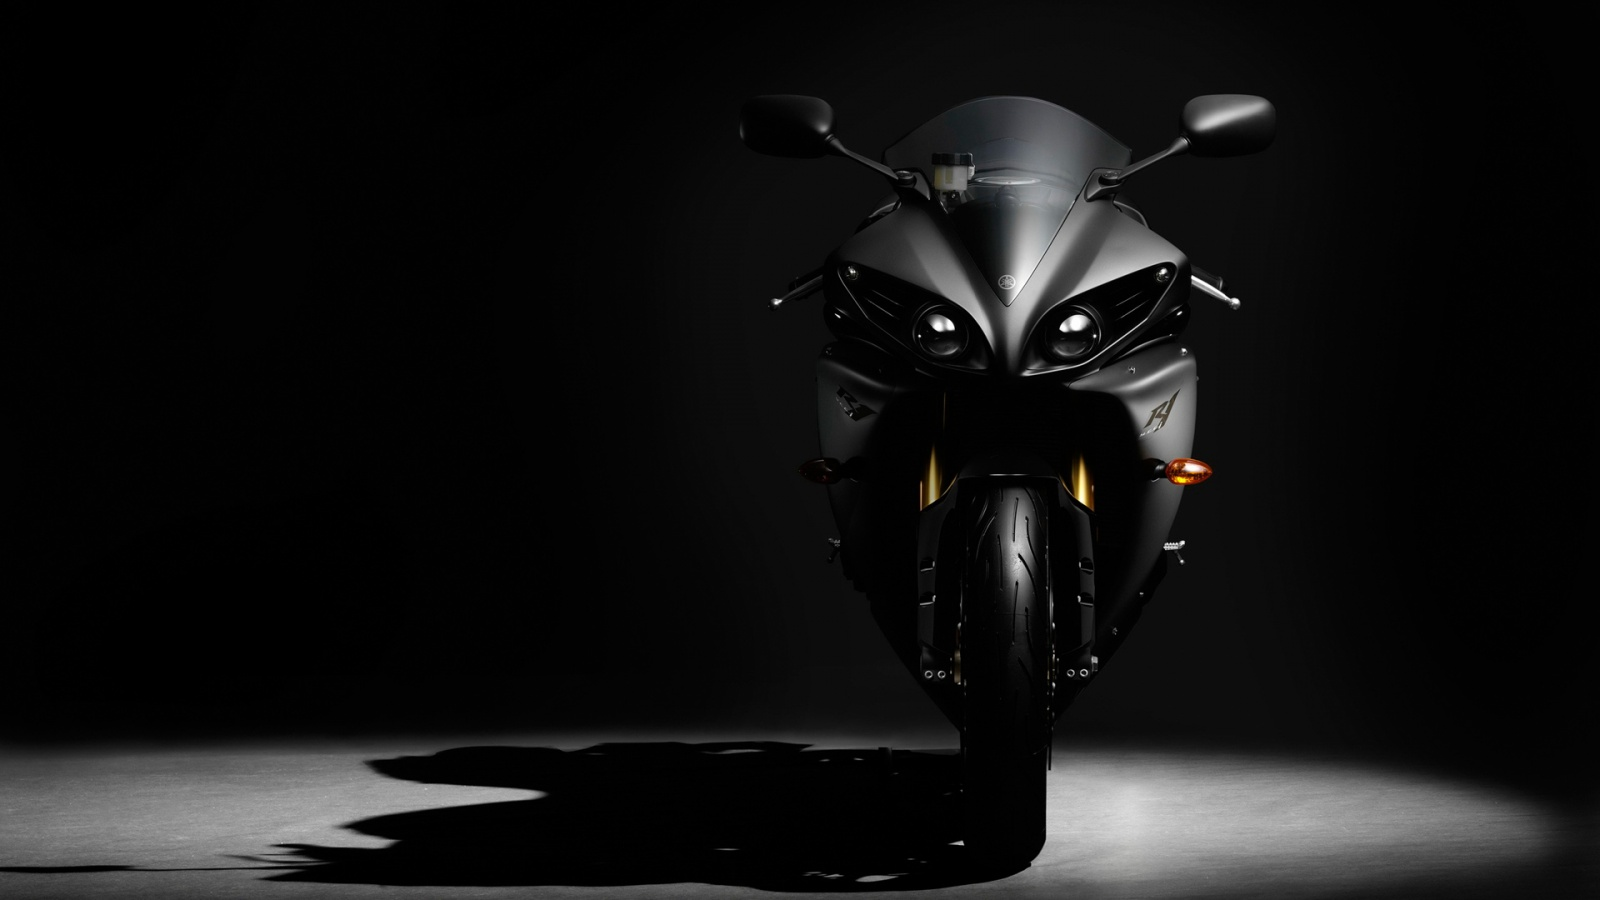 2012 Yamaha YZF R1 Wallpapers In Jpg Format For Free Download